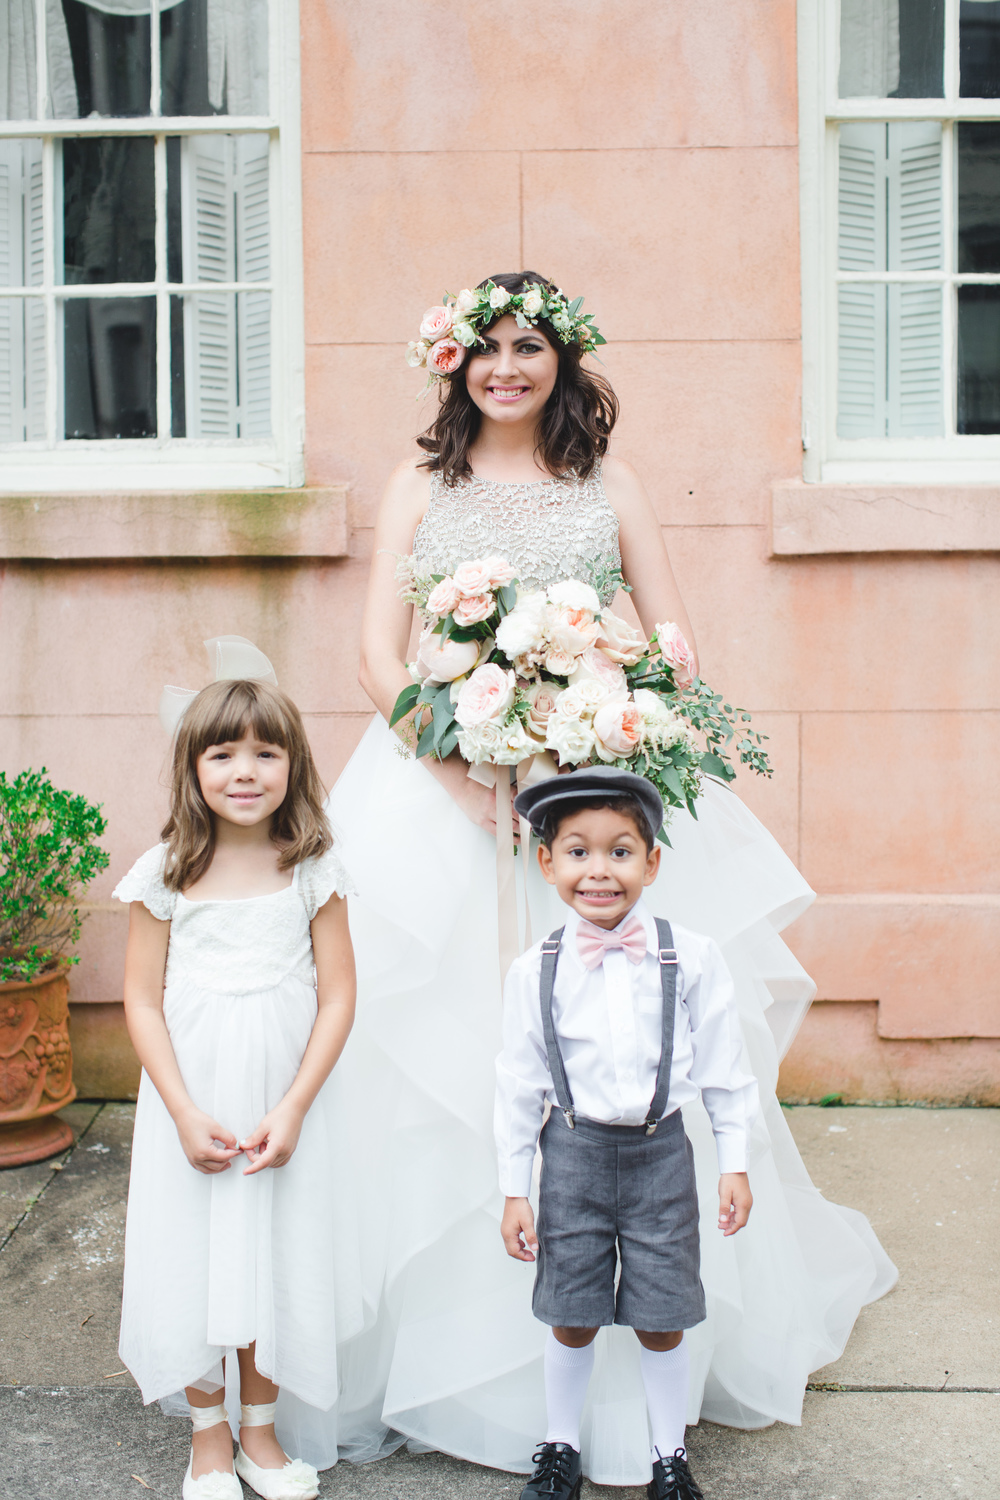 daniela-and-pedro-wedding-izzy-hudgins-photography-a-to-zinnias-whitfield-square-charles-h-morris-center-wedding-ivoyy-and-beau-bridal-boutique-dorie-hayley-paige-savannah-wedding-planner-savannah-bridal-boutique-savannah-weddings-12.jpg